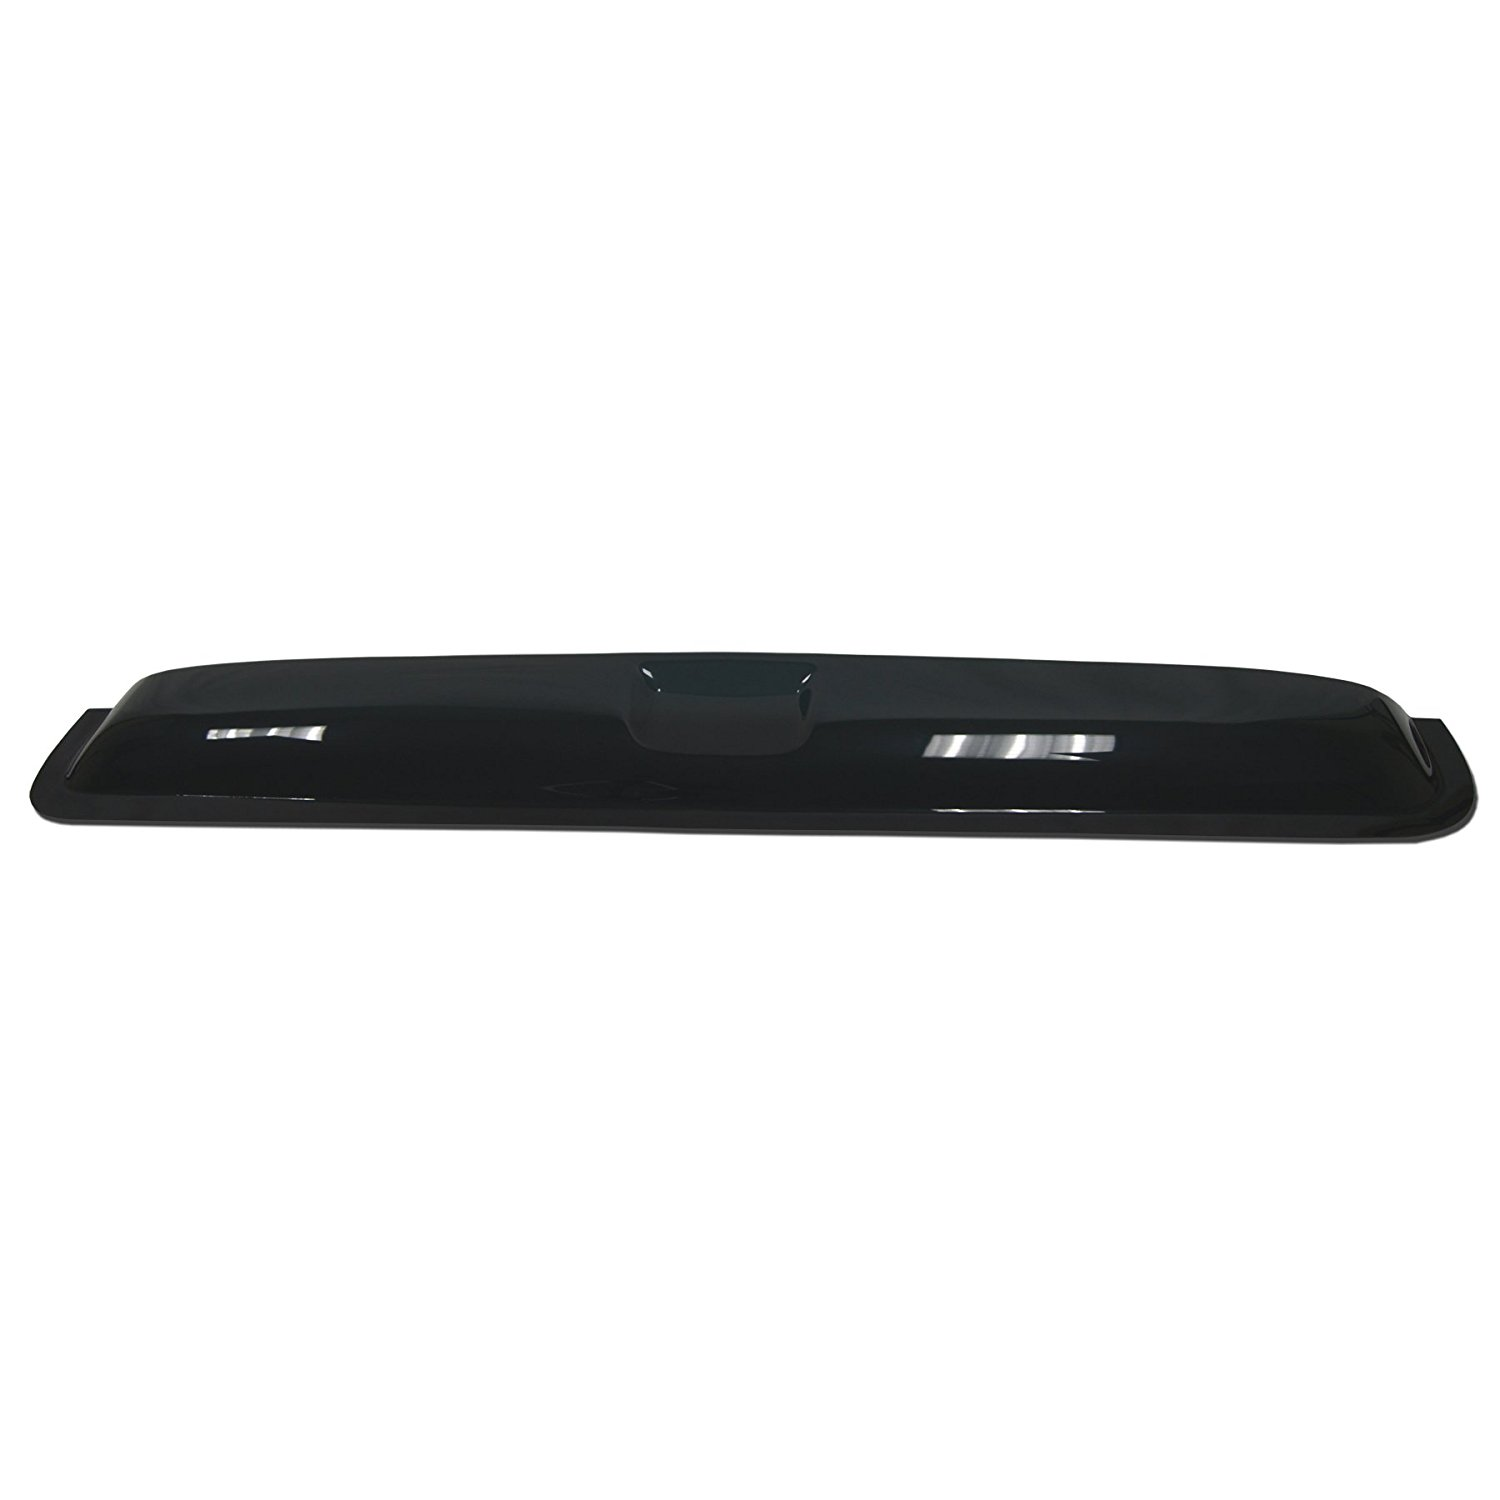 TuningPros DSVT2-113 compatible with 2005-2011 Dodge Dakota Club Cab//Extended Cab Type 2 Sunroof Moonroof Top Wind Deflector Visor Thickness 1.4mm 980mm 38.5 Dark Smoke Set of 1